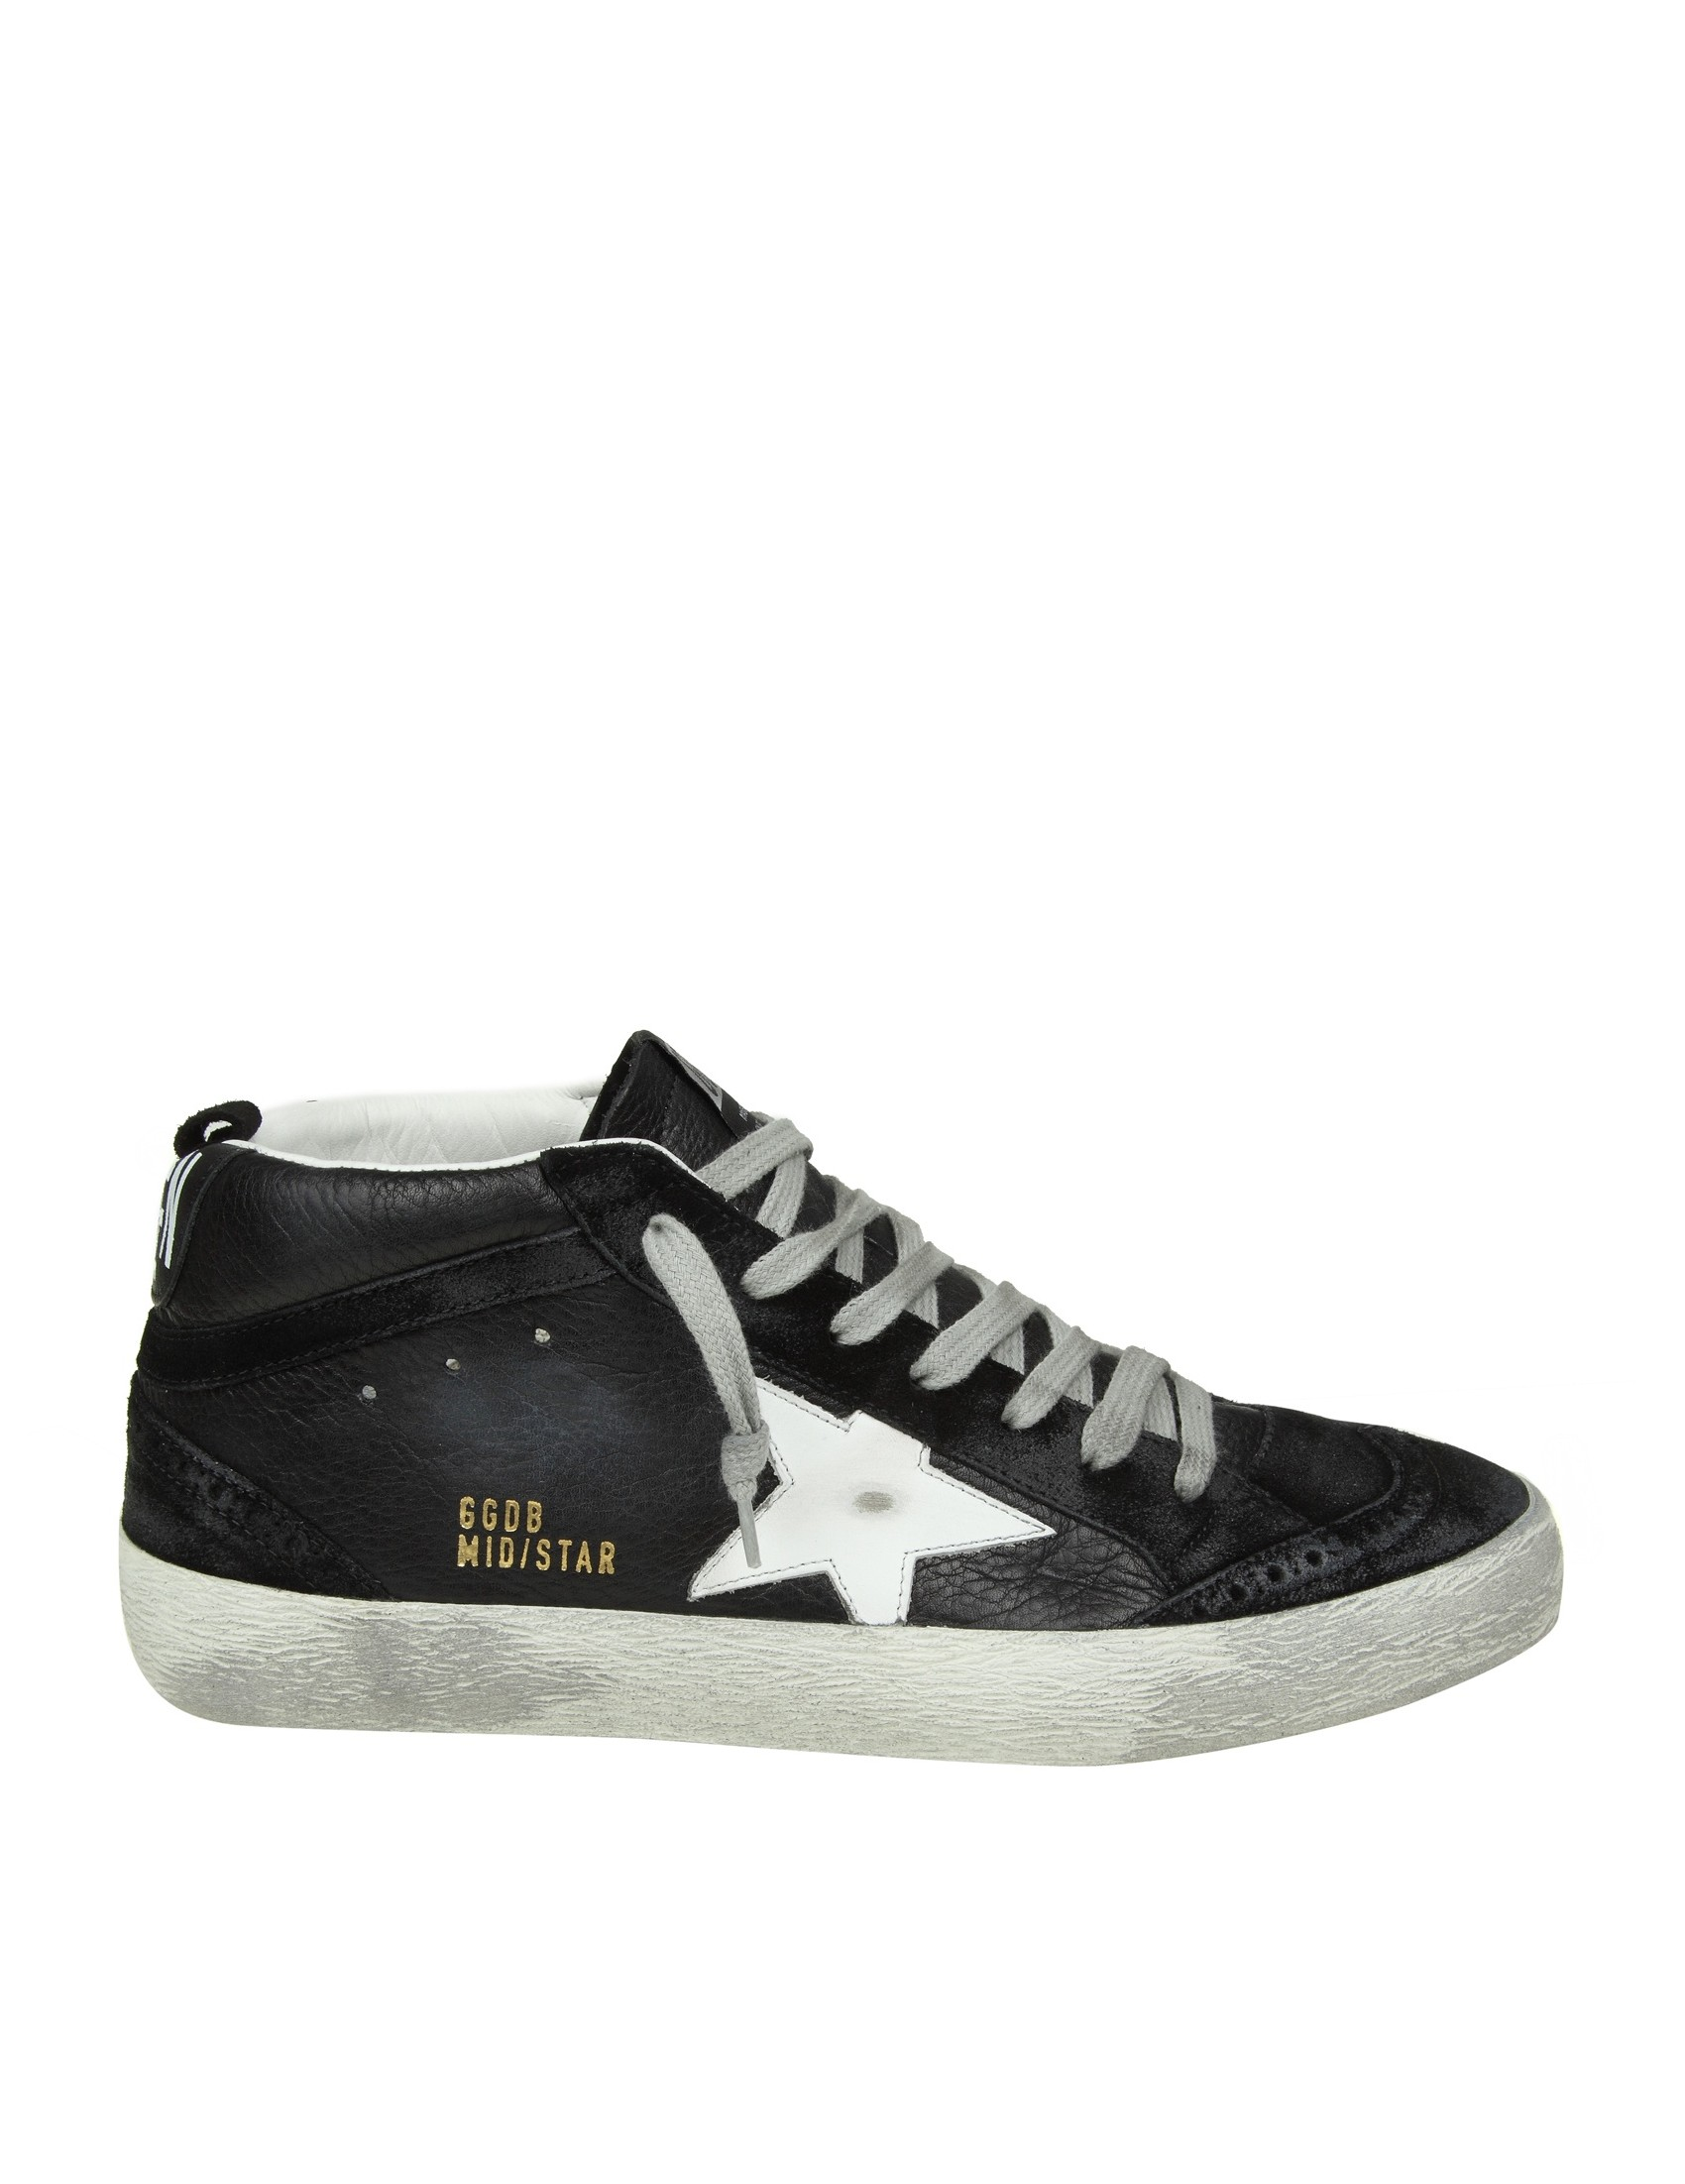 41642232fa2a GOLDEN GOOSE SNEAKERS MID STAR LEATHER BLACK WHITE STAR MAN